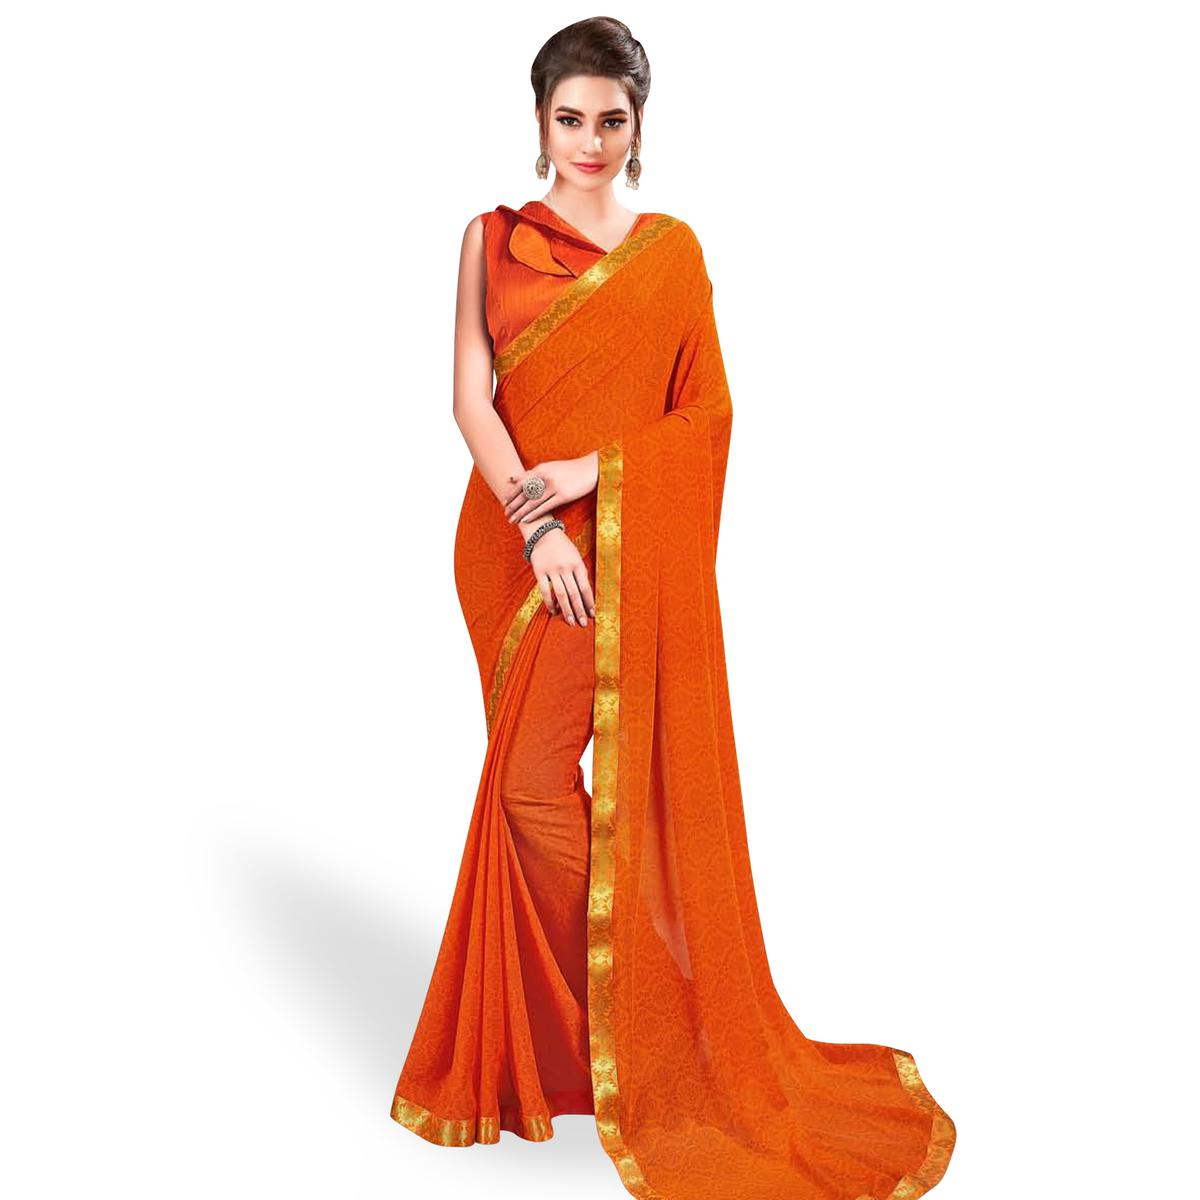 Intricate Orange Colored Casual Wear Printed Georgette Saree With Jacquard Lace Border